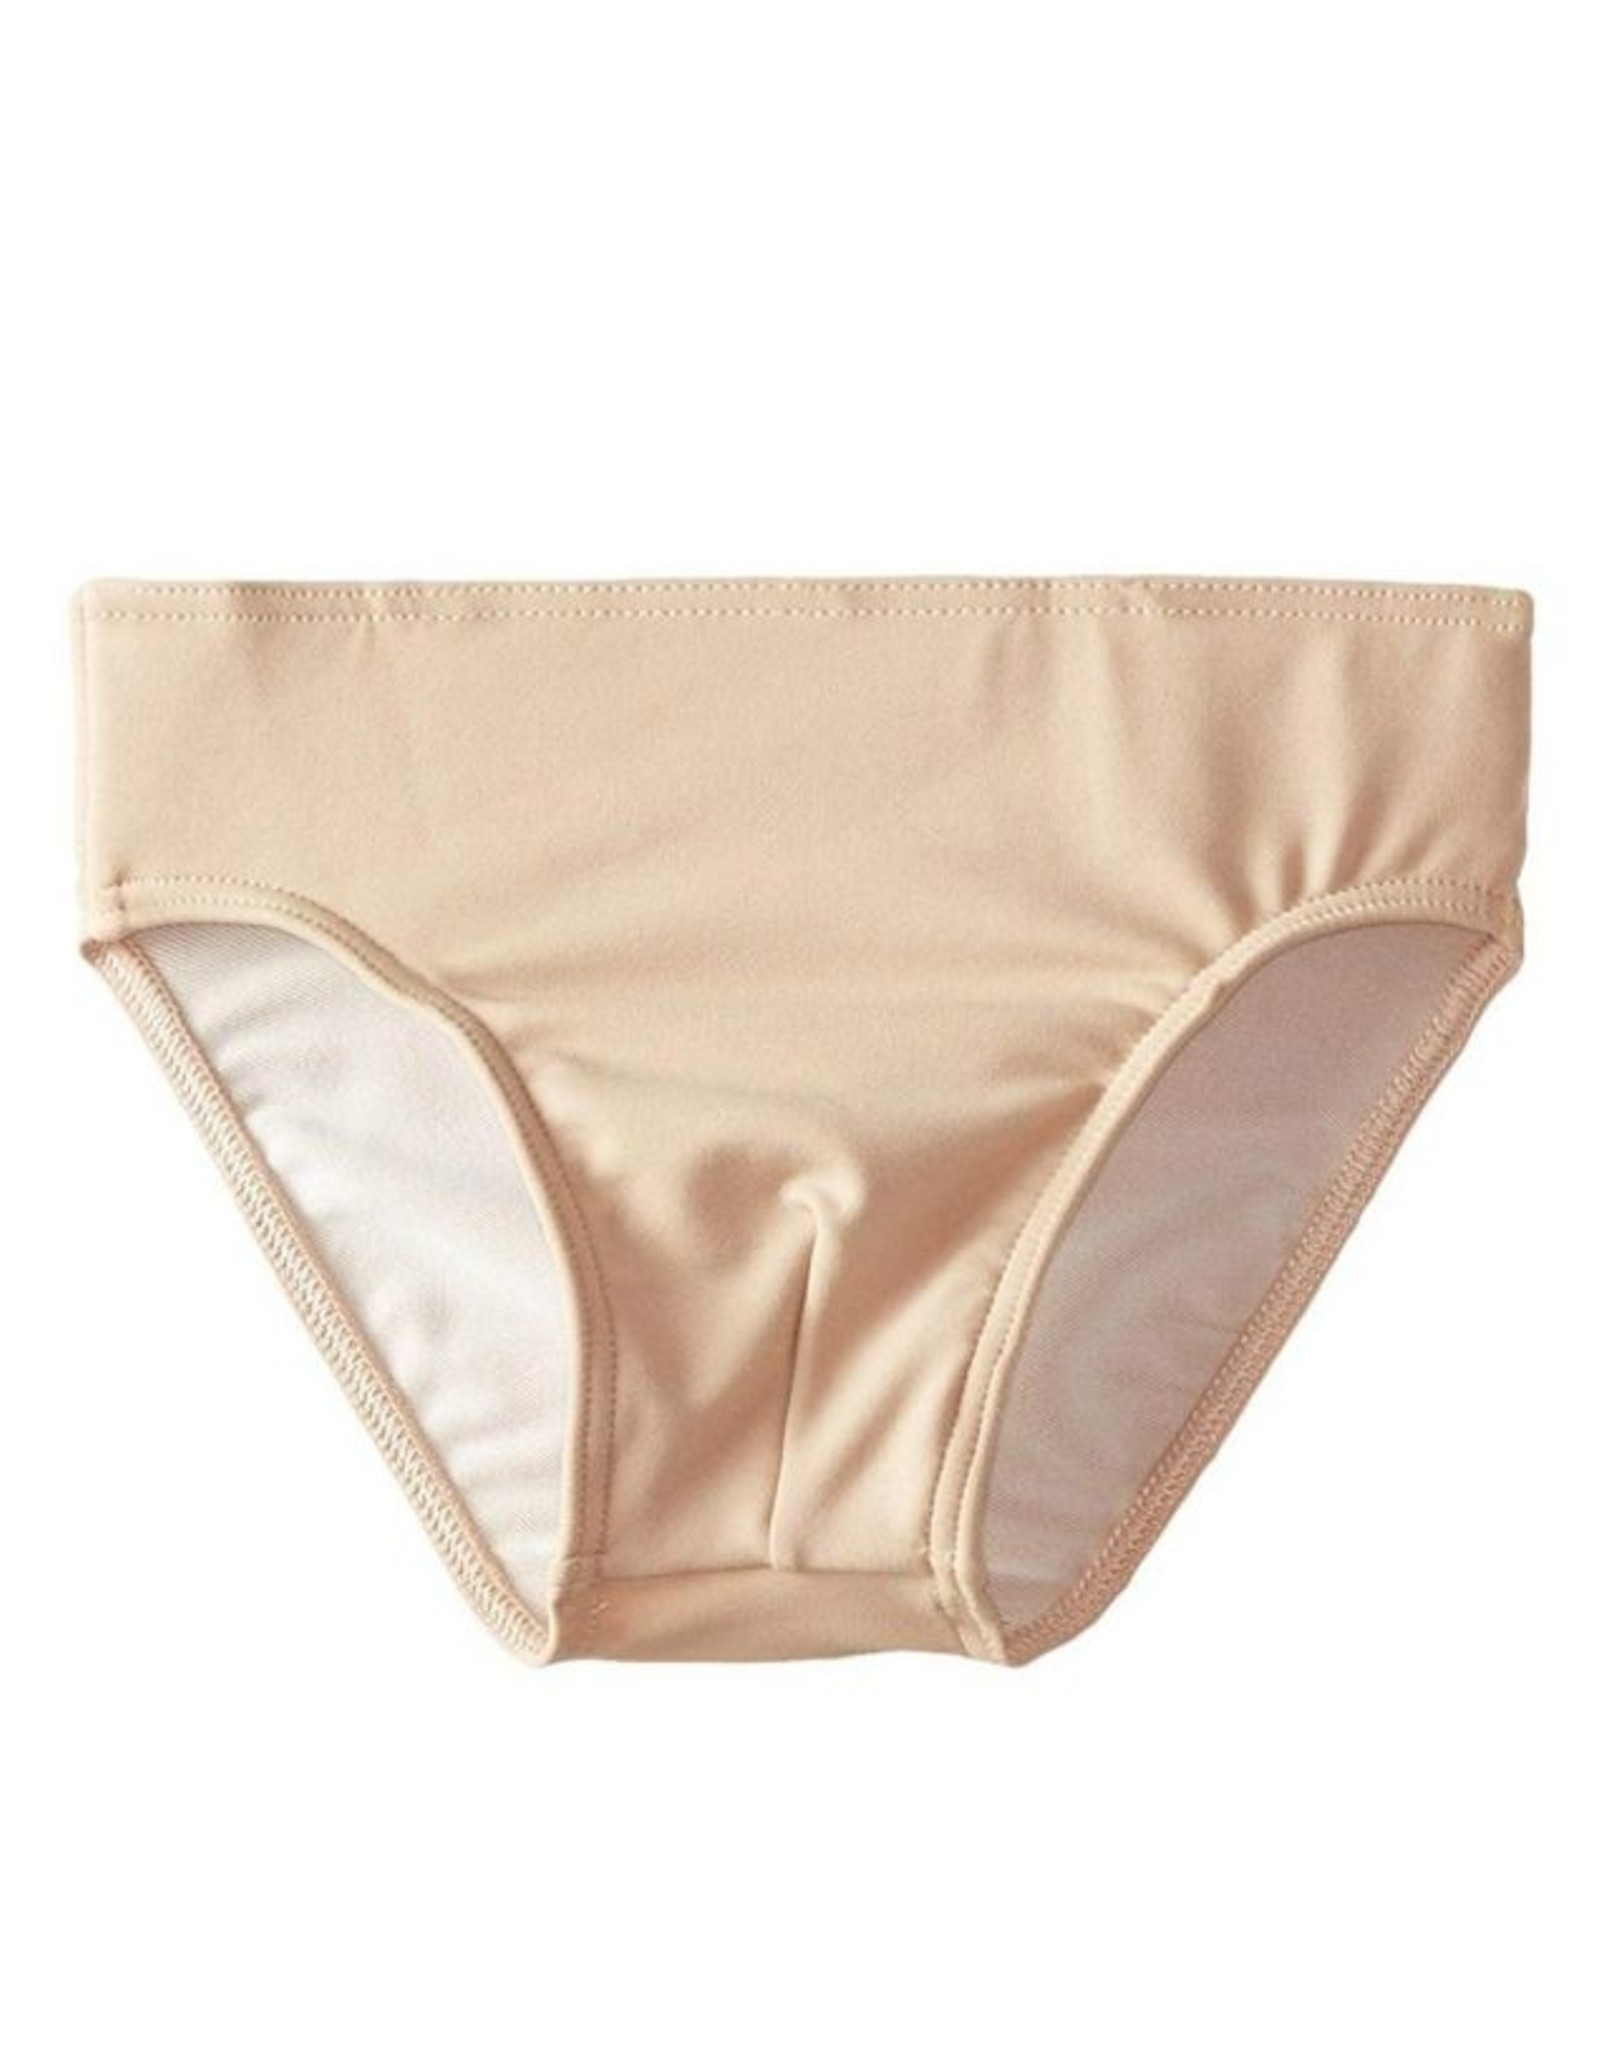 CAPEZIO BOY'S FULL SEAT DANCE BRIEF